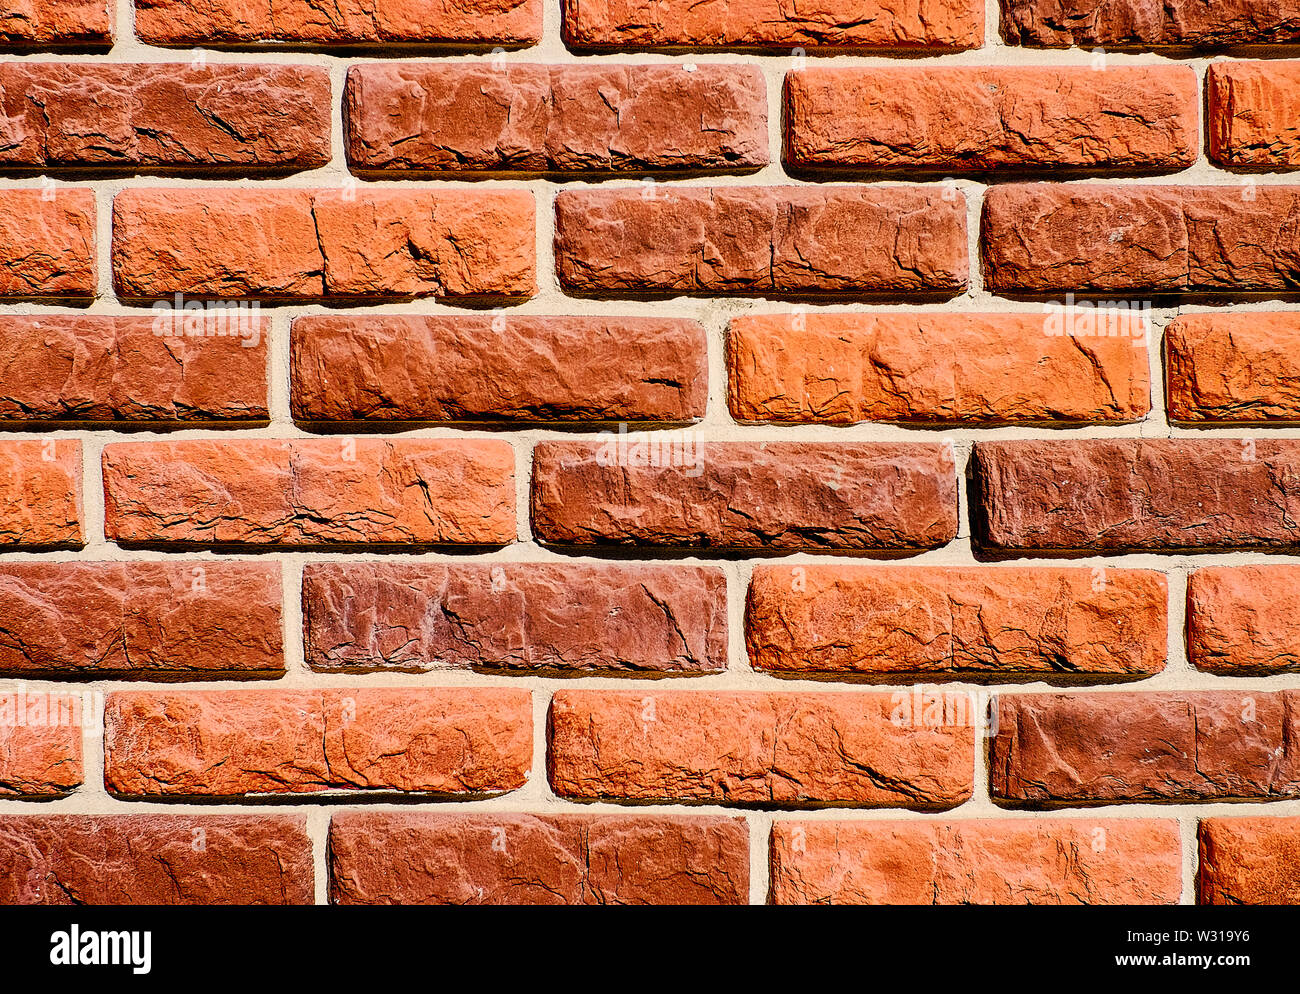 Background of red brick wall pattern texture. Great for graffiti inscriptions. Stock Photo